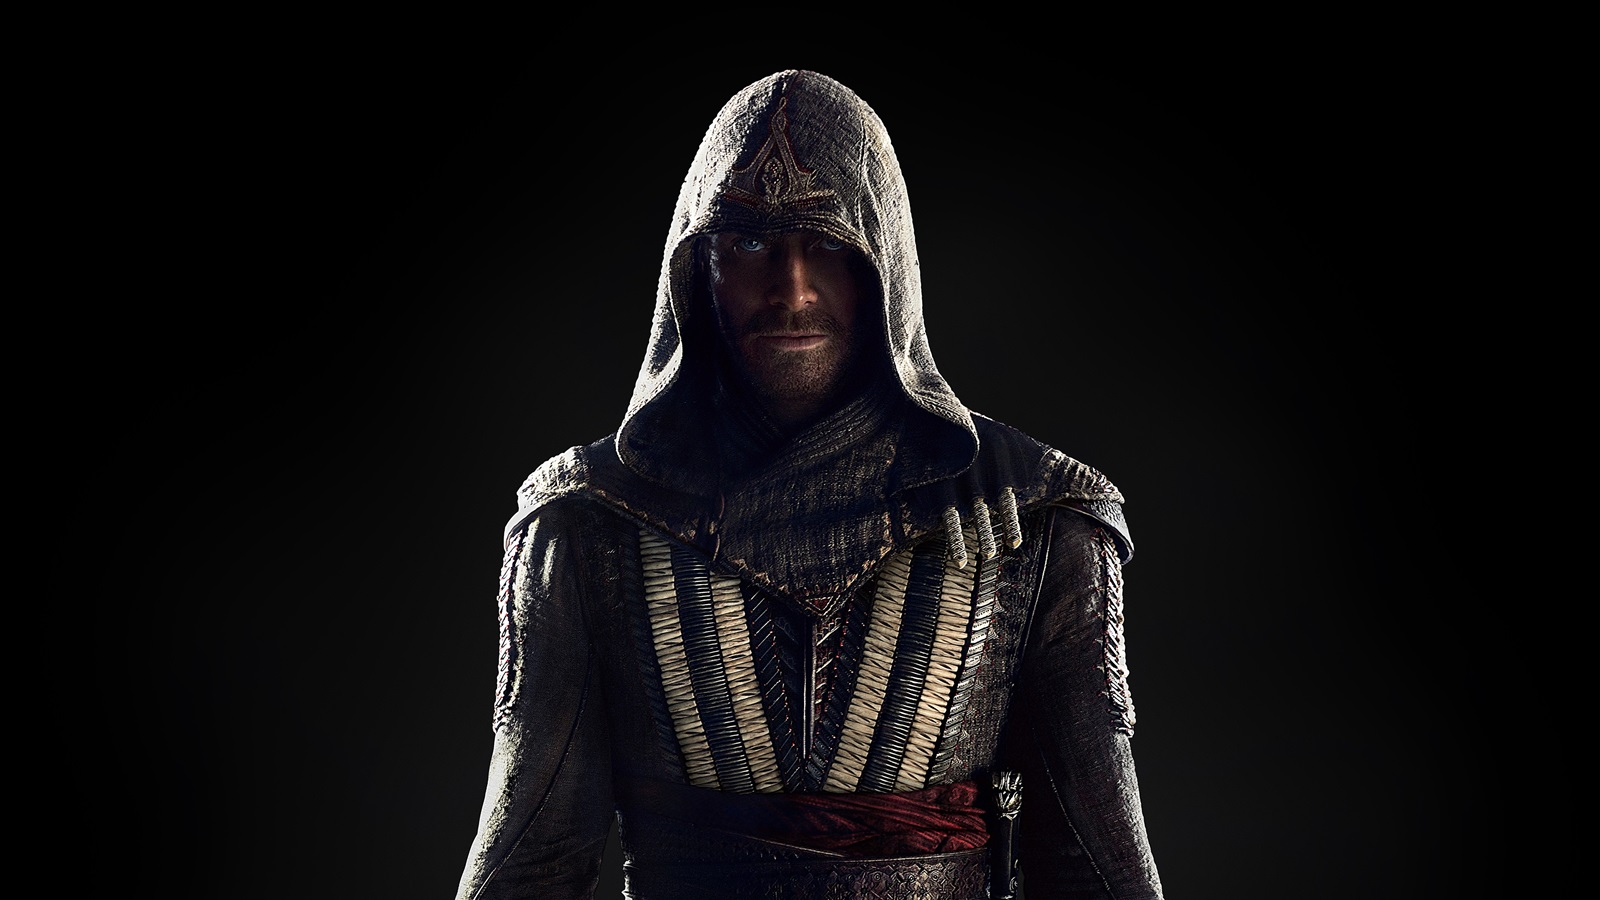 Michael Fassbender, Assassin's Creed 2016 movie wallpaper 1600x900